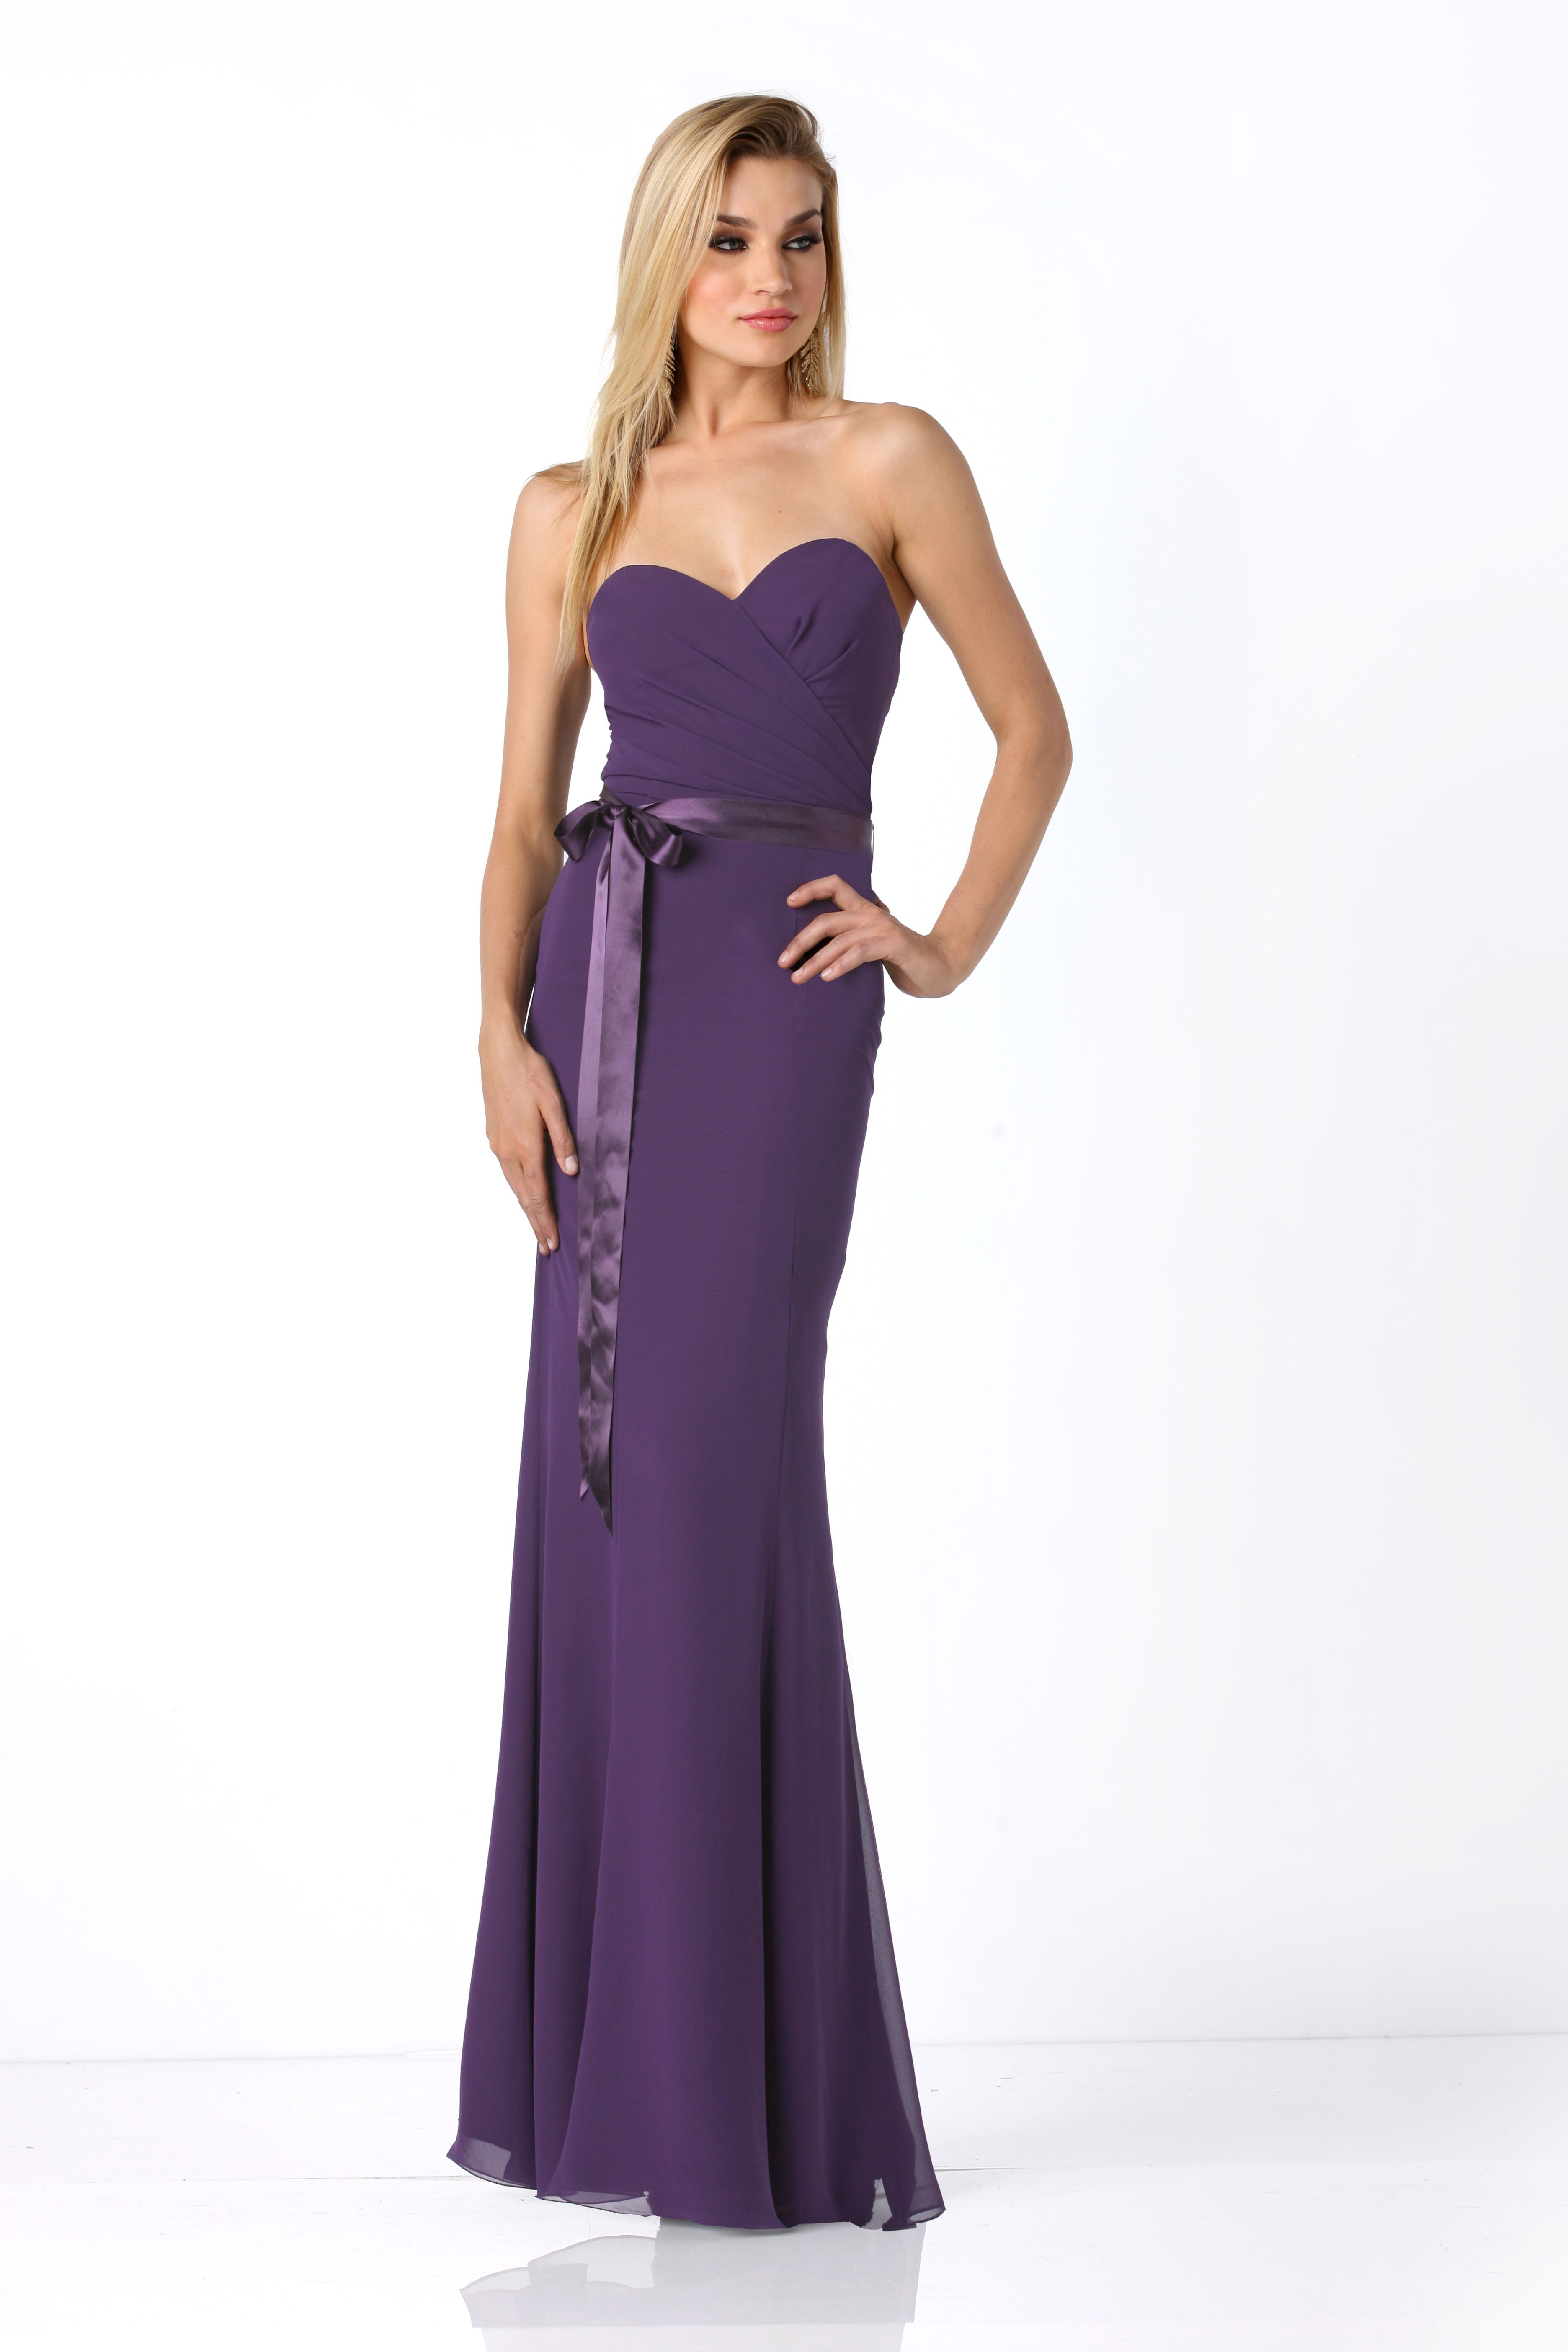 Long purple bridesmaid dresses from @@impressionbride. #wedding ...